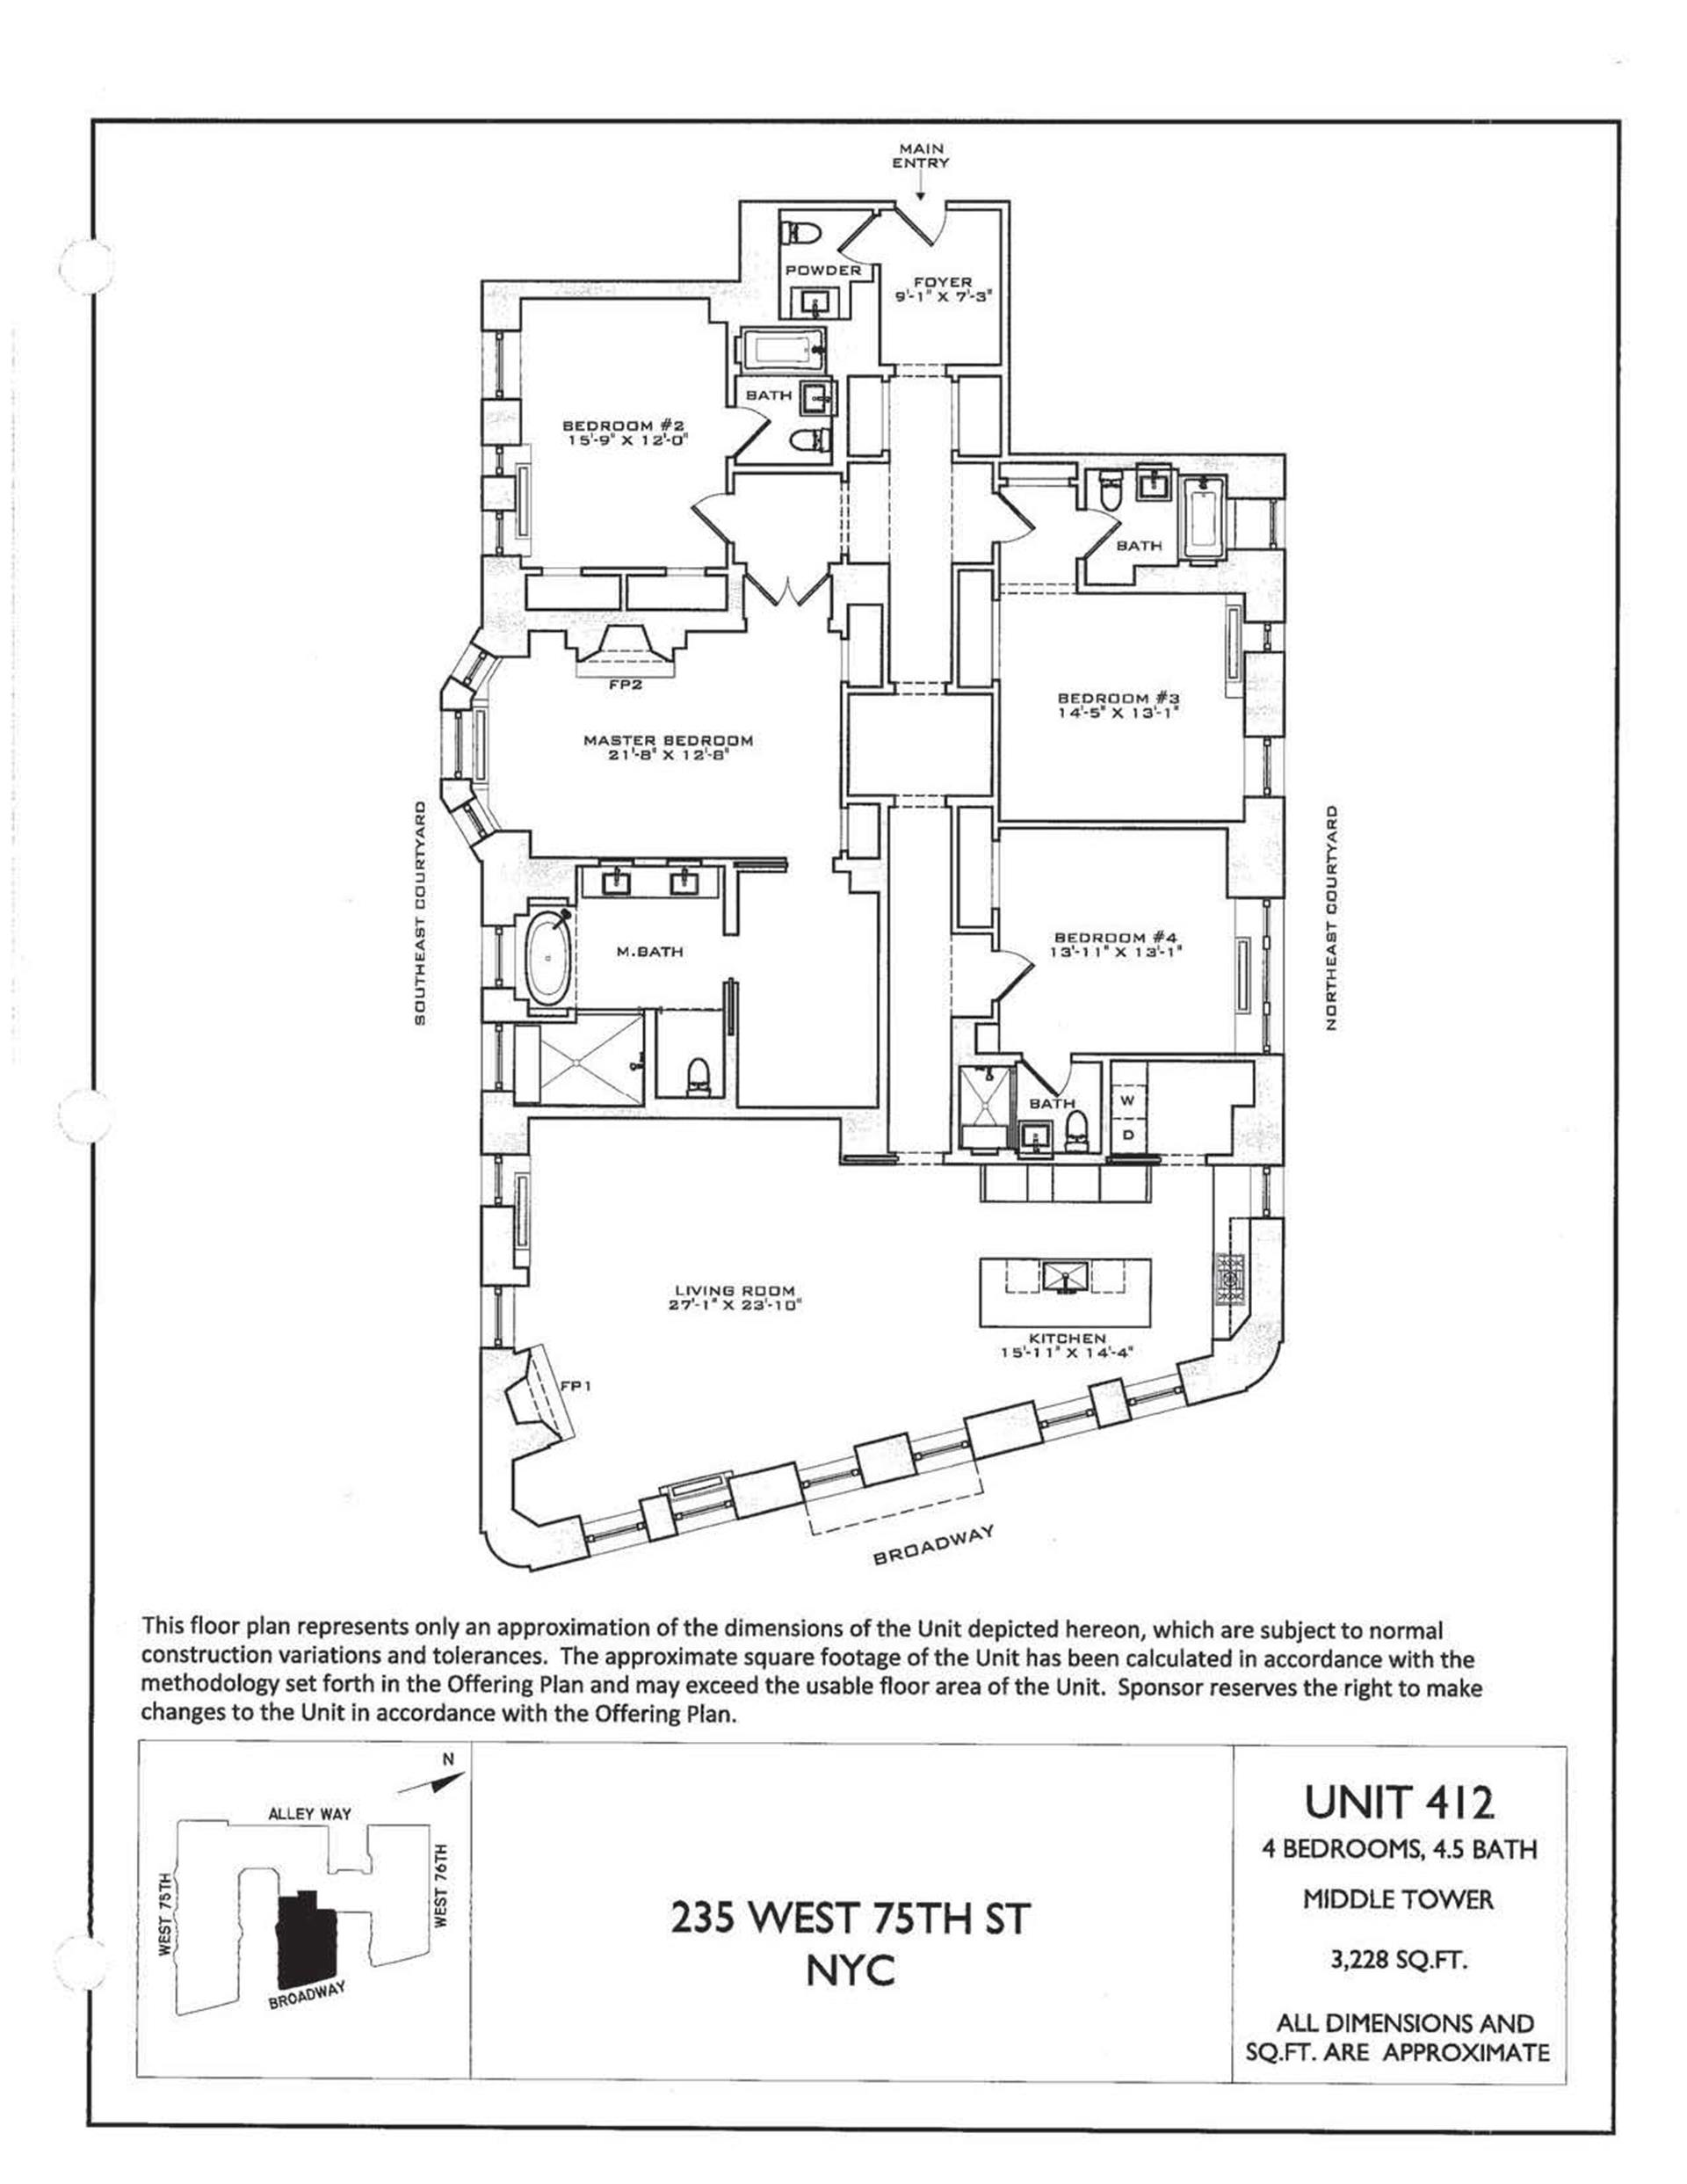 Floor plan of The Astor, 235 West 75th St, 412 - Upper West Side, New York